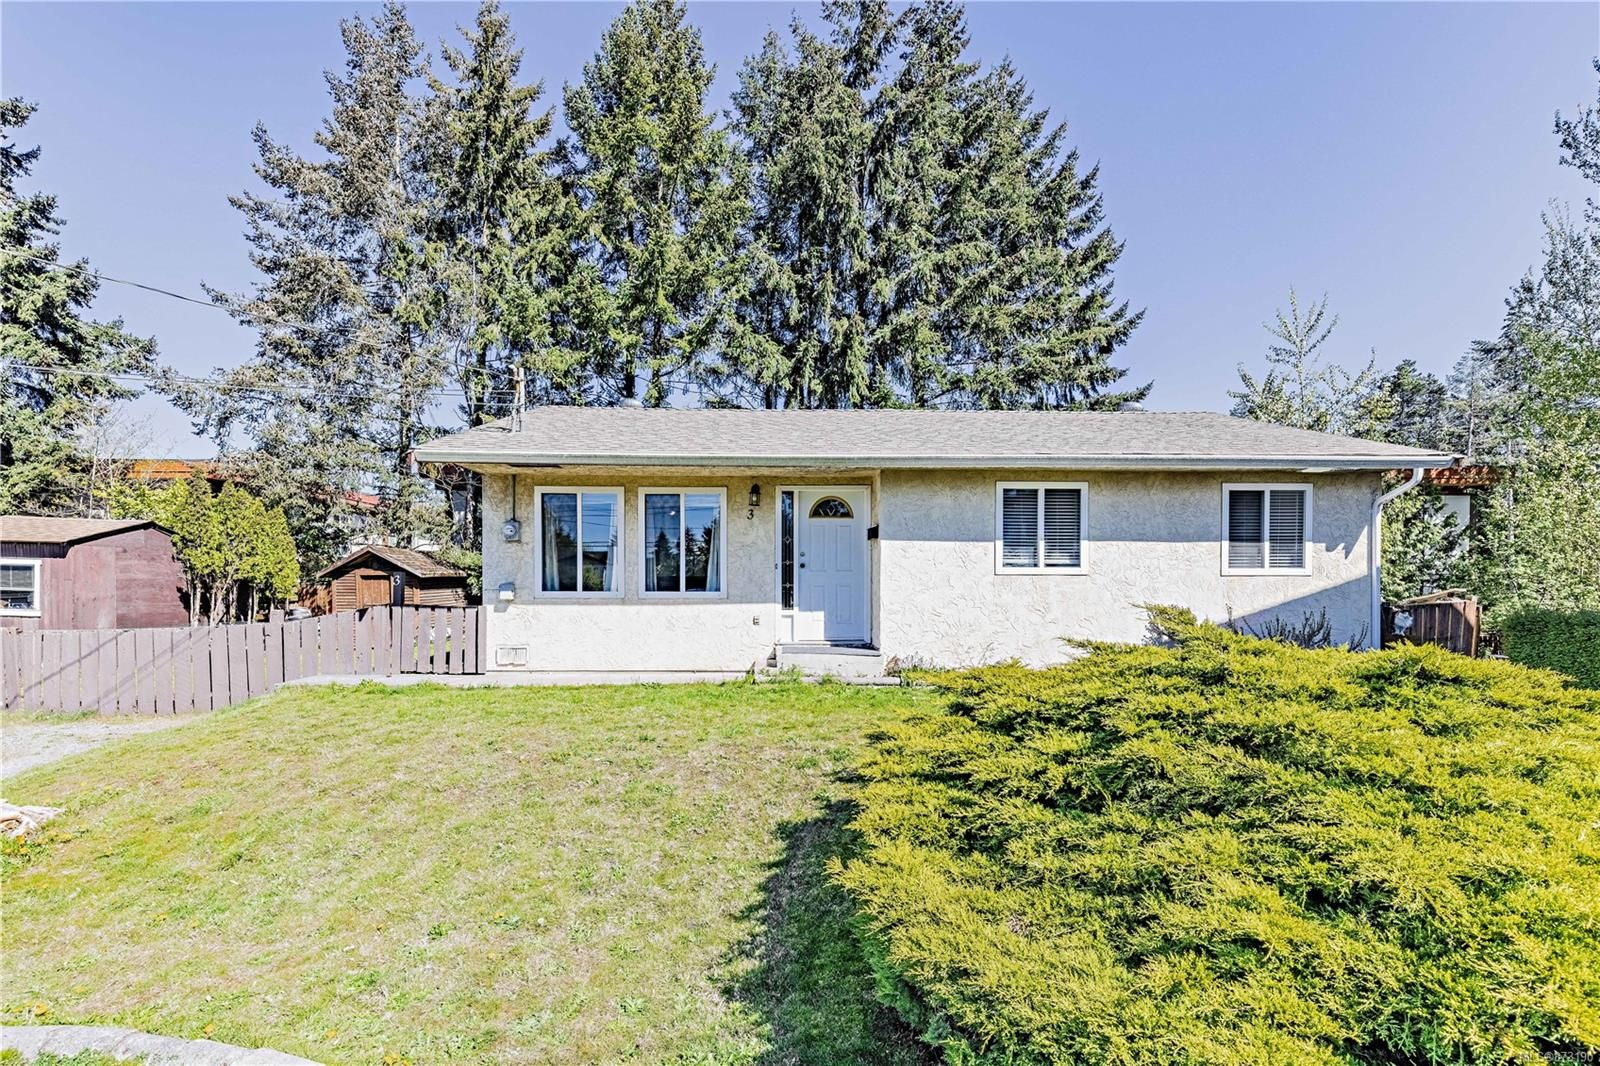 Main Photo: 3 2170 Spencer Rd in : Na Central Nanaimo House for sale (Nanaimo)  : MLS®# 873190